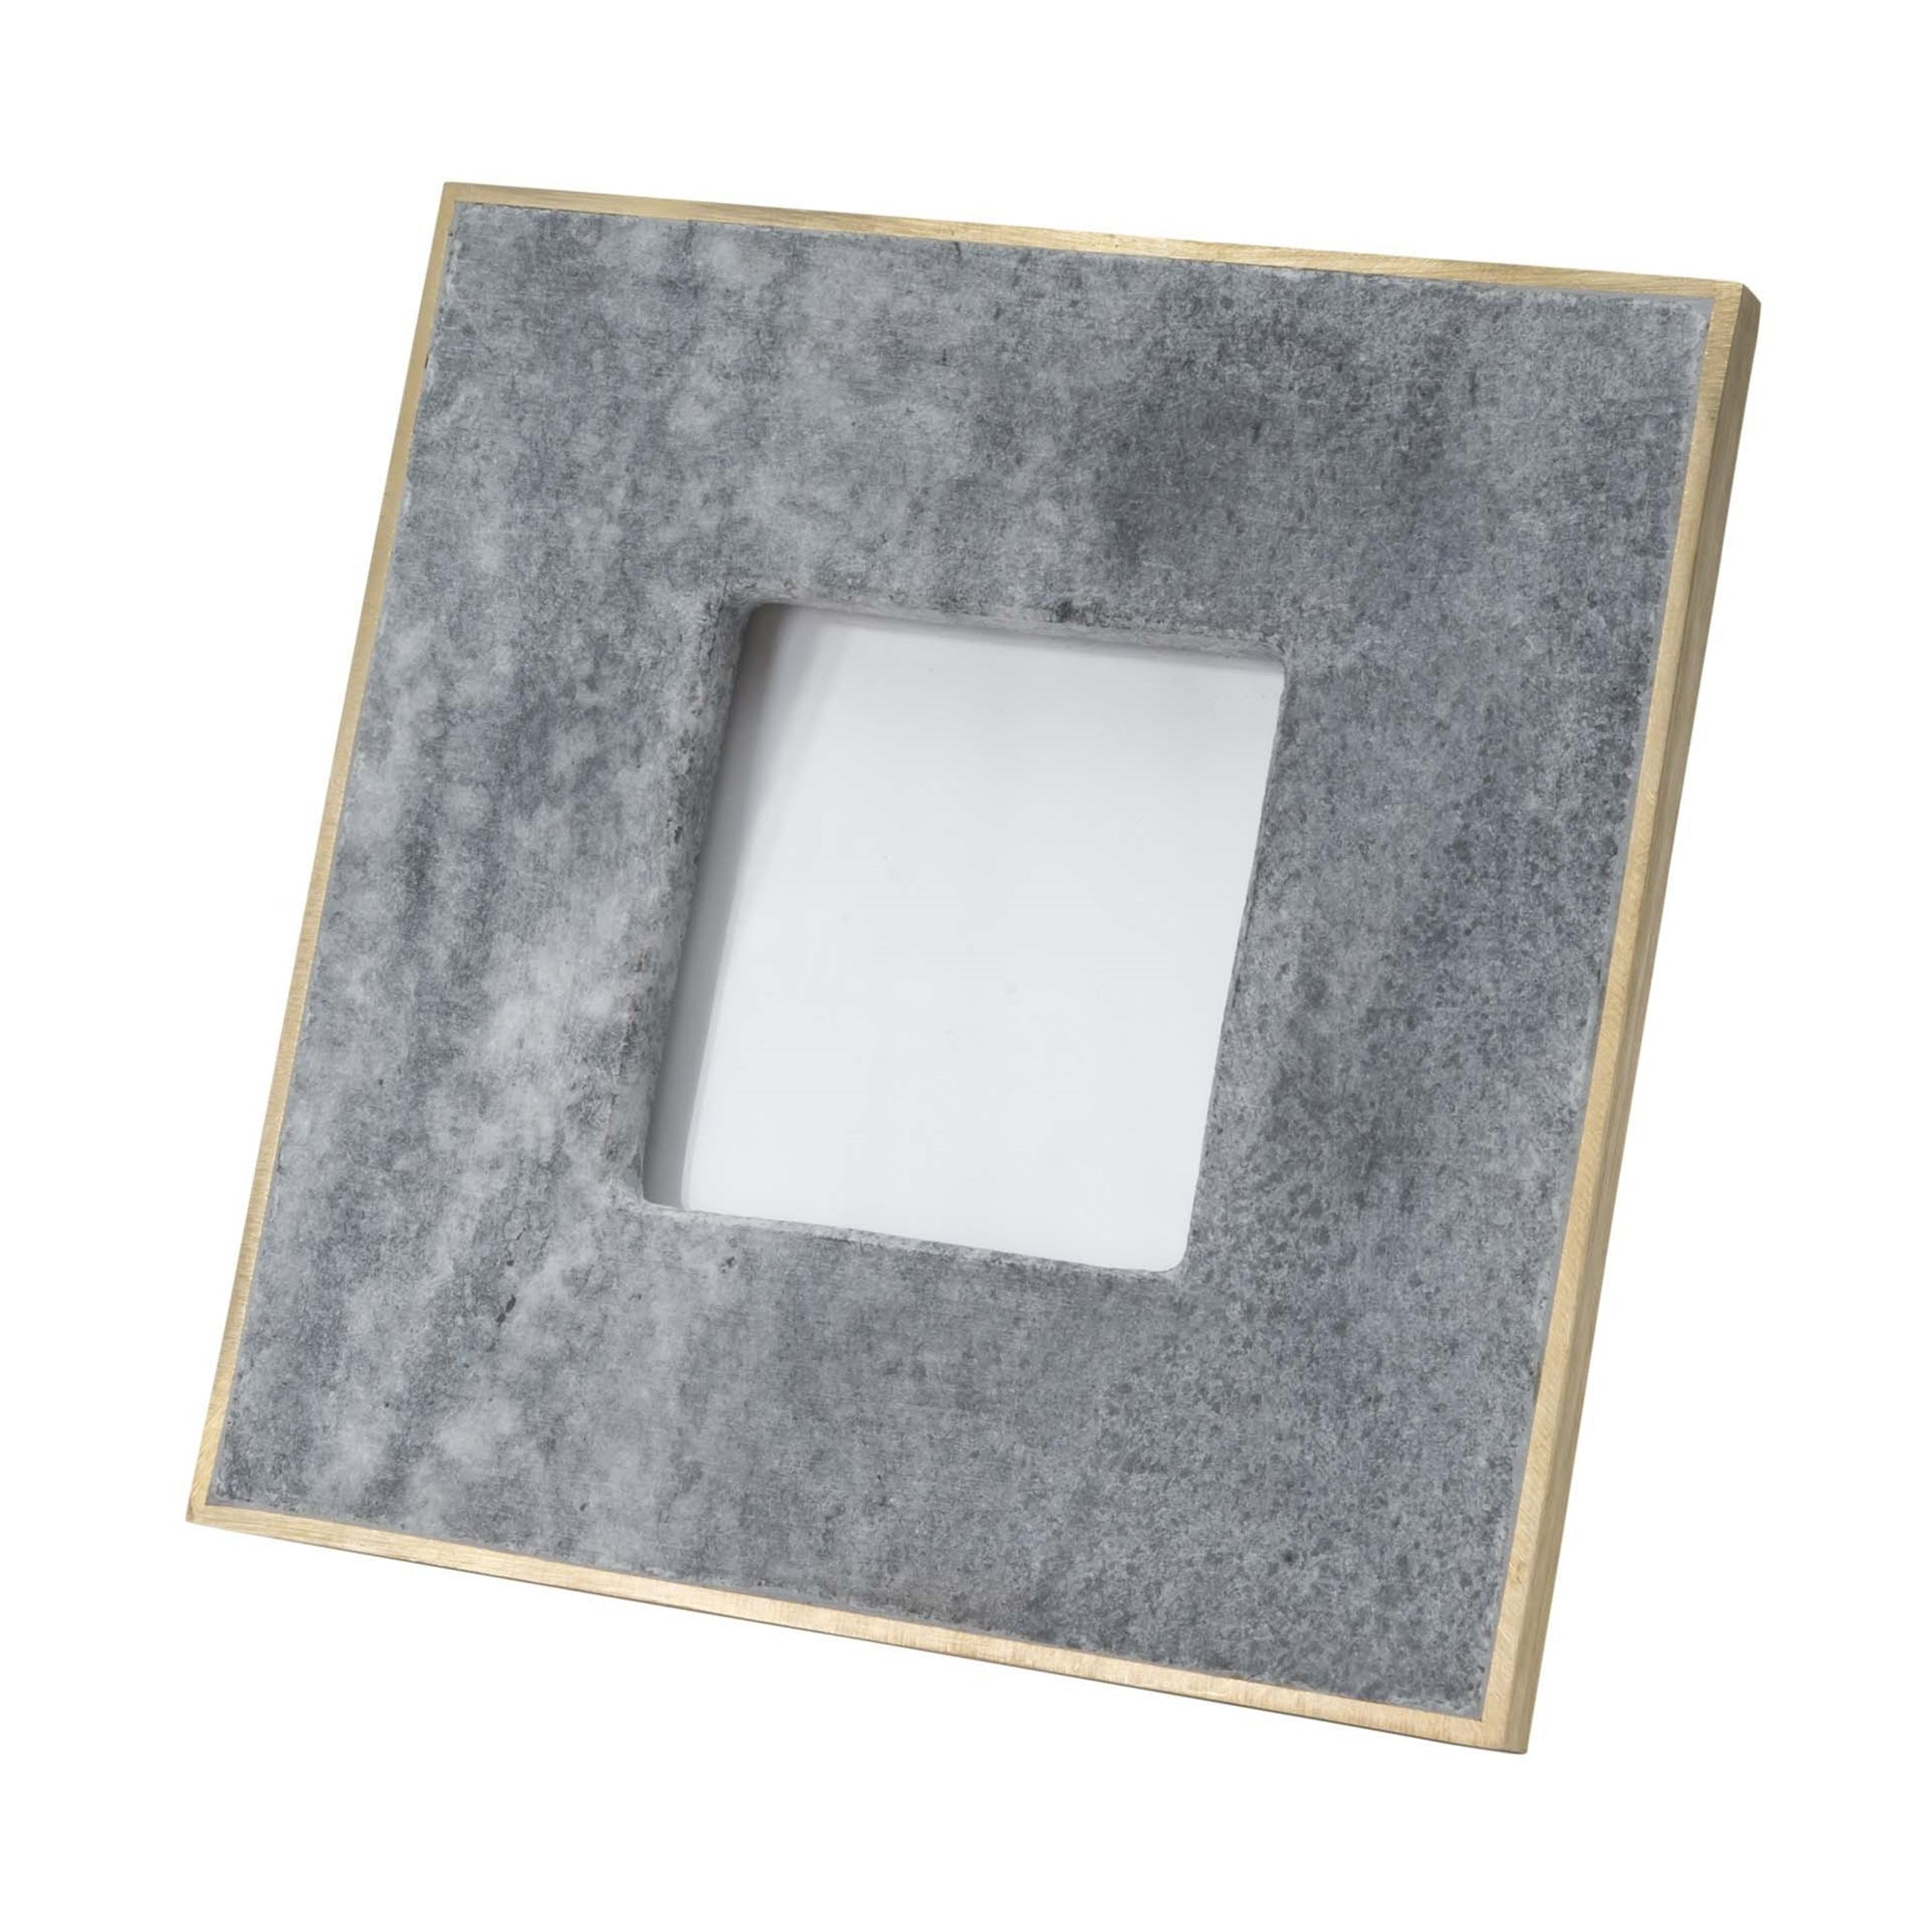 NEW - MARBLE PICTURE FRAMES - BLACK